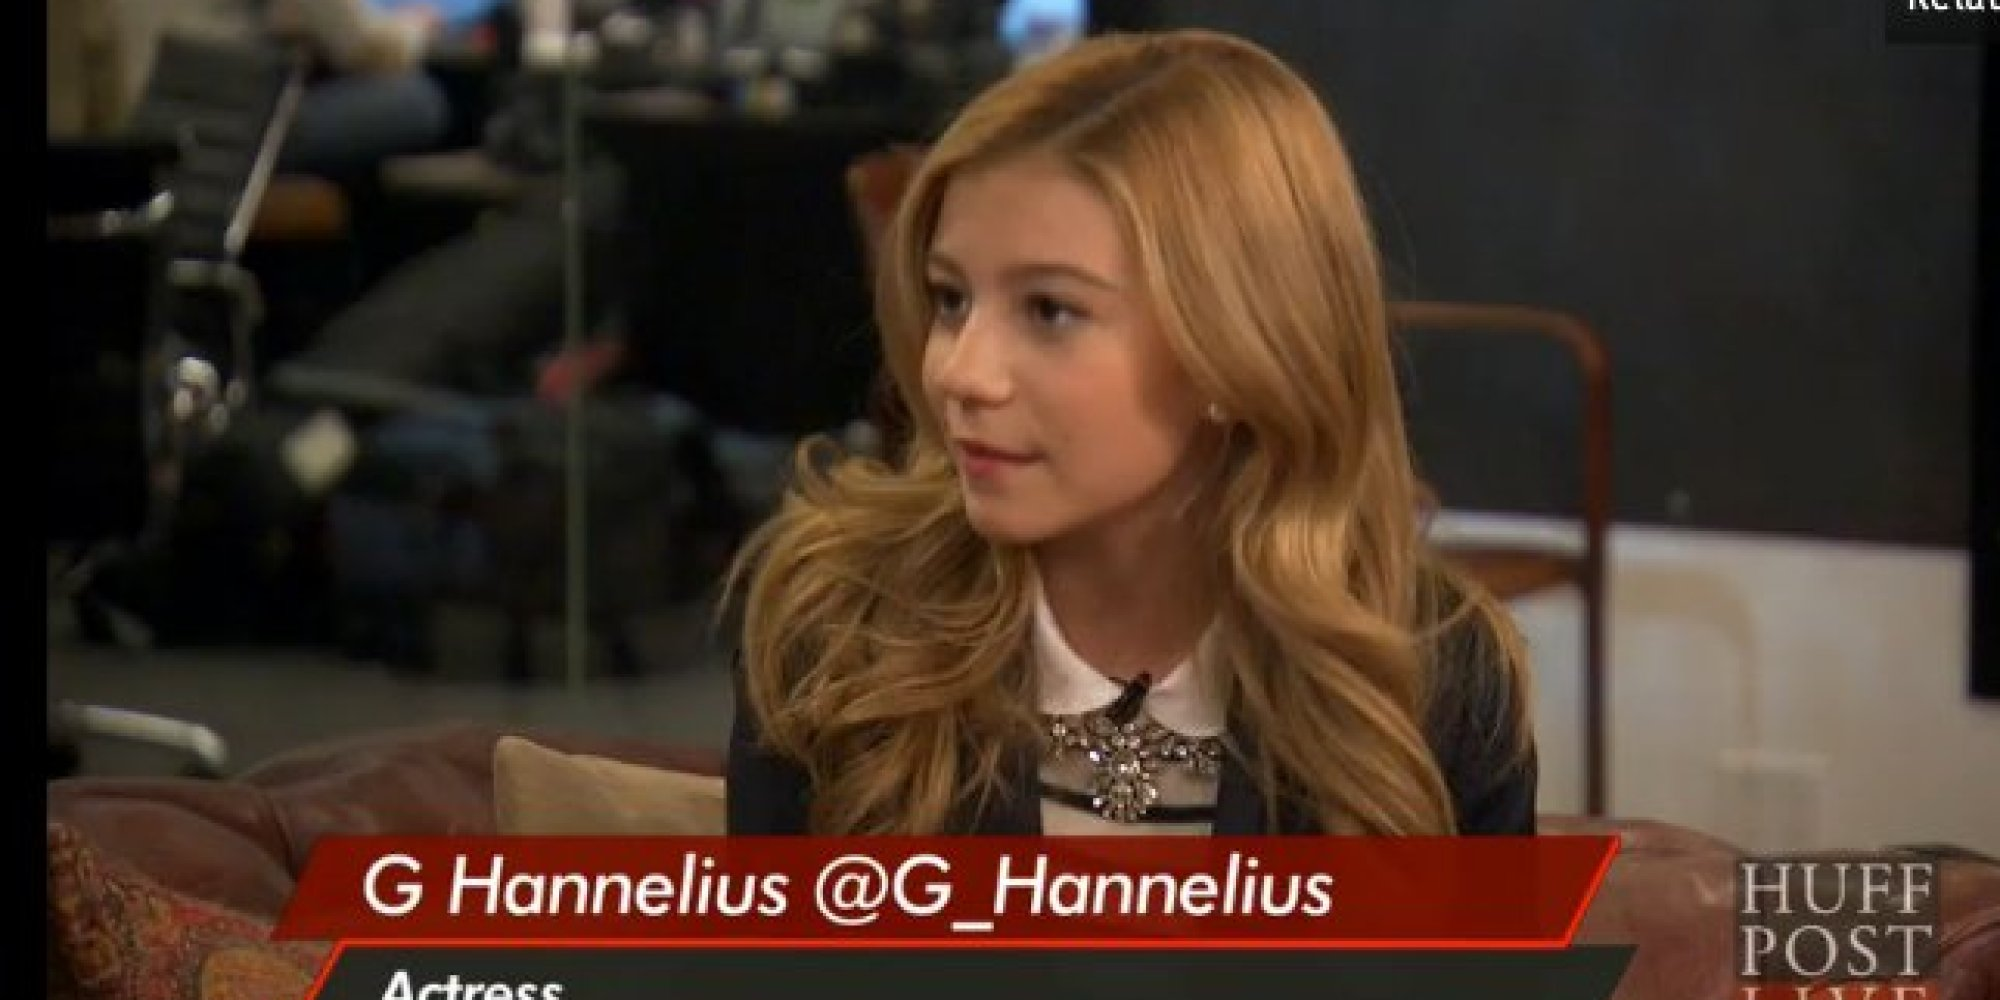 (We got an exclusive interview with G Hannelius and)